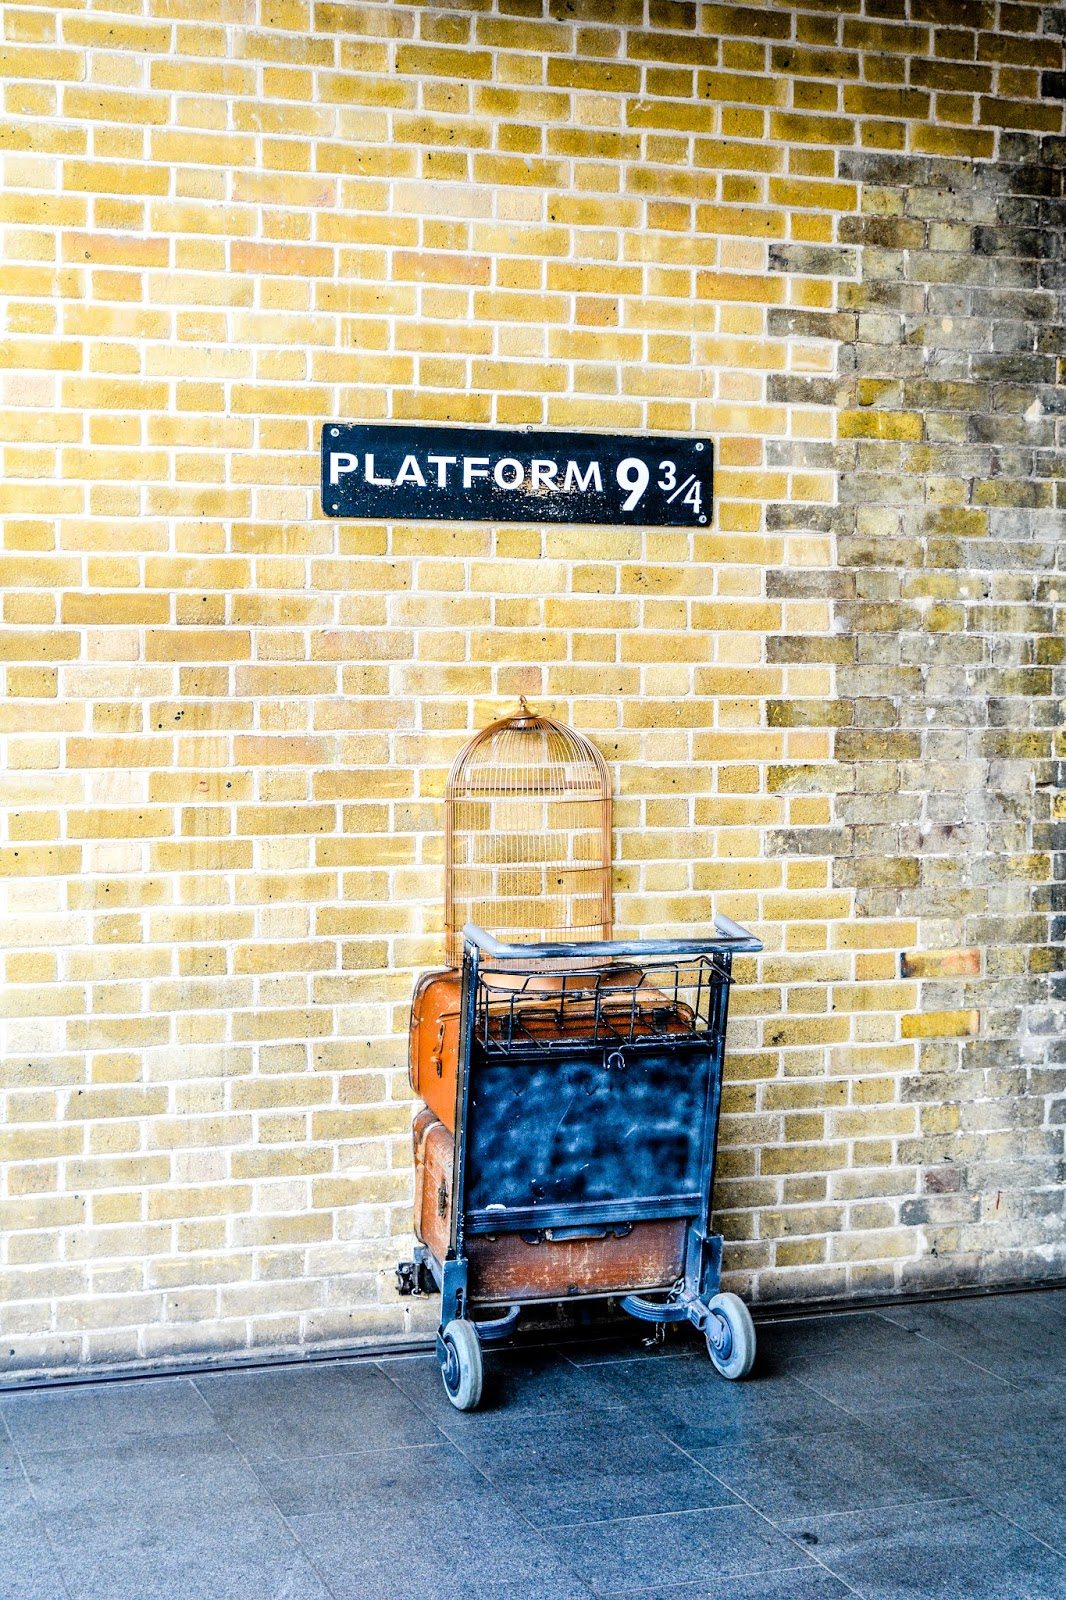 King's Cross Platform 9 ¾